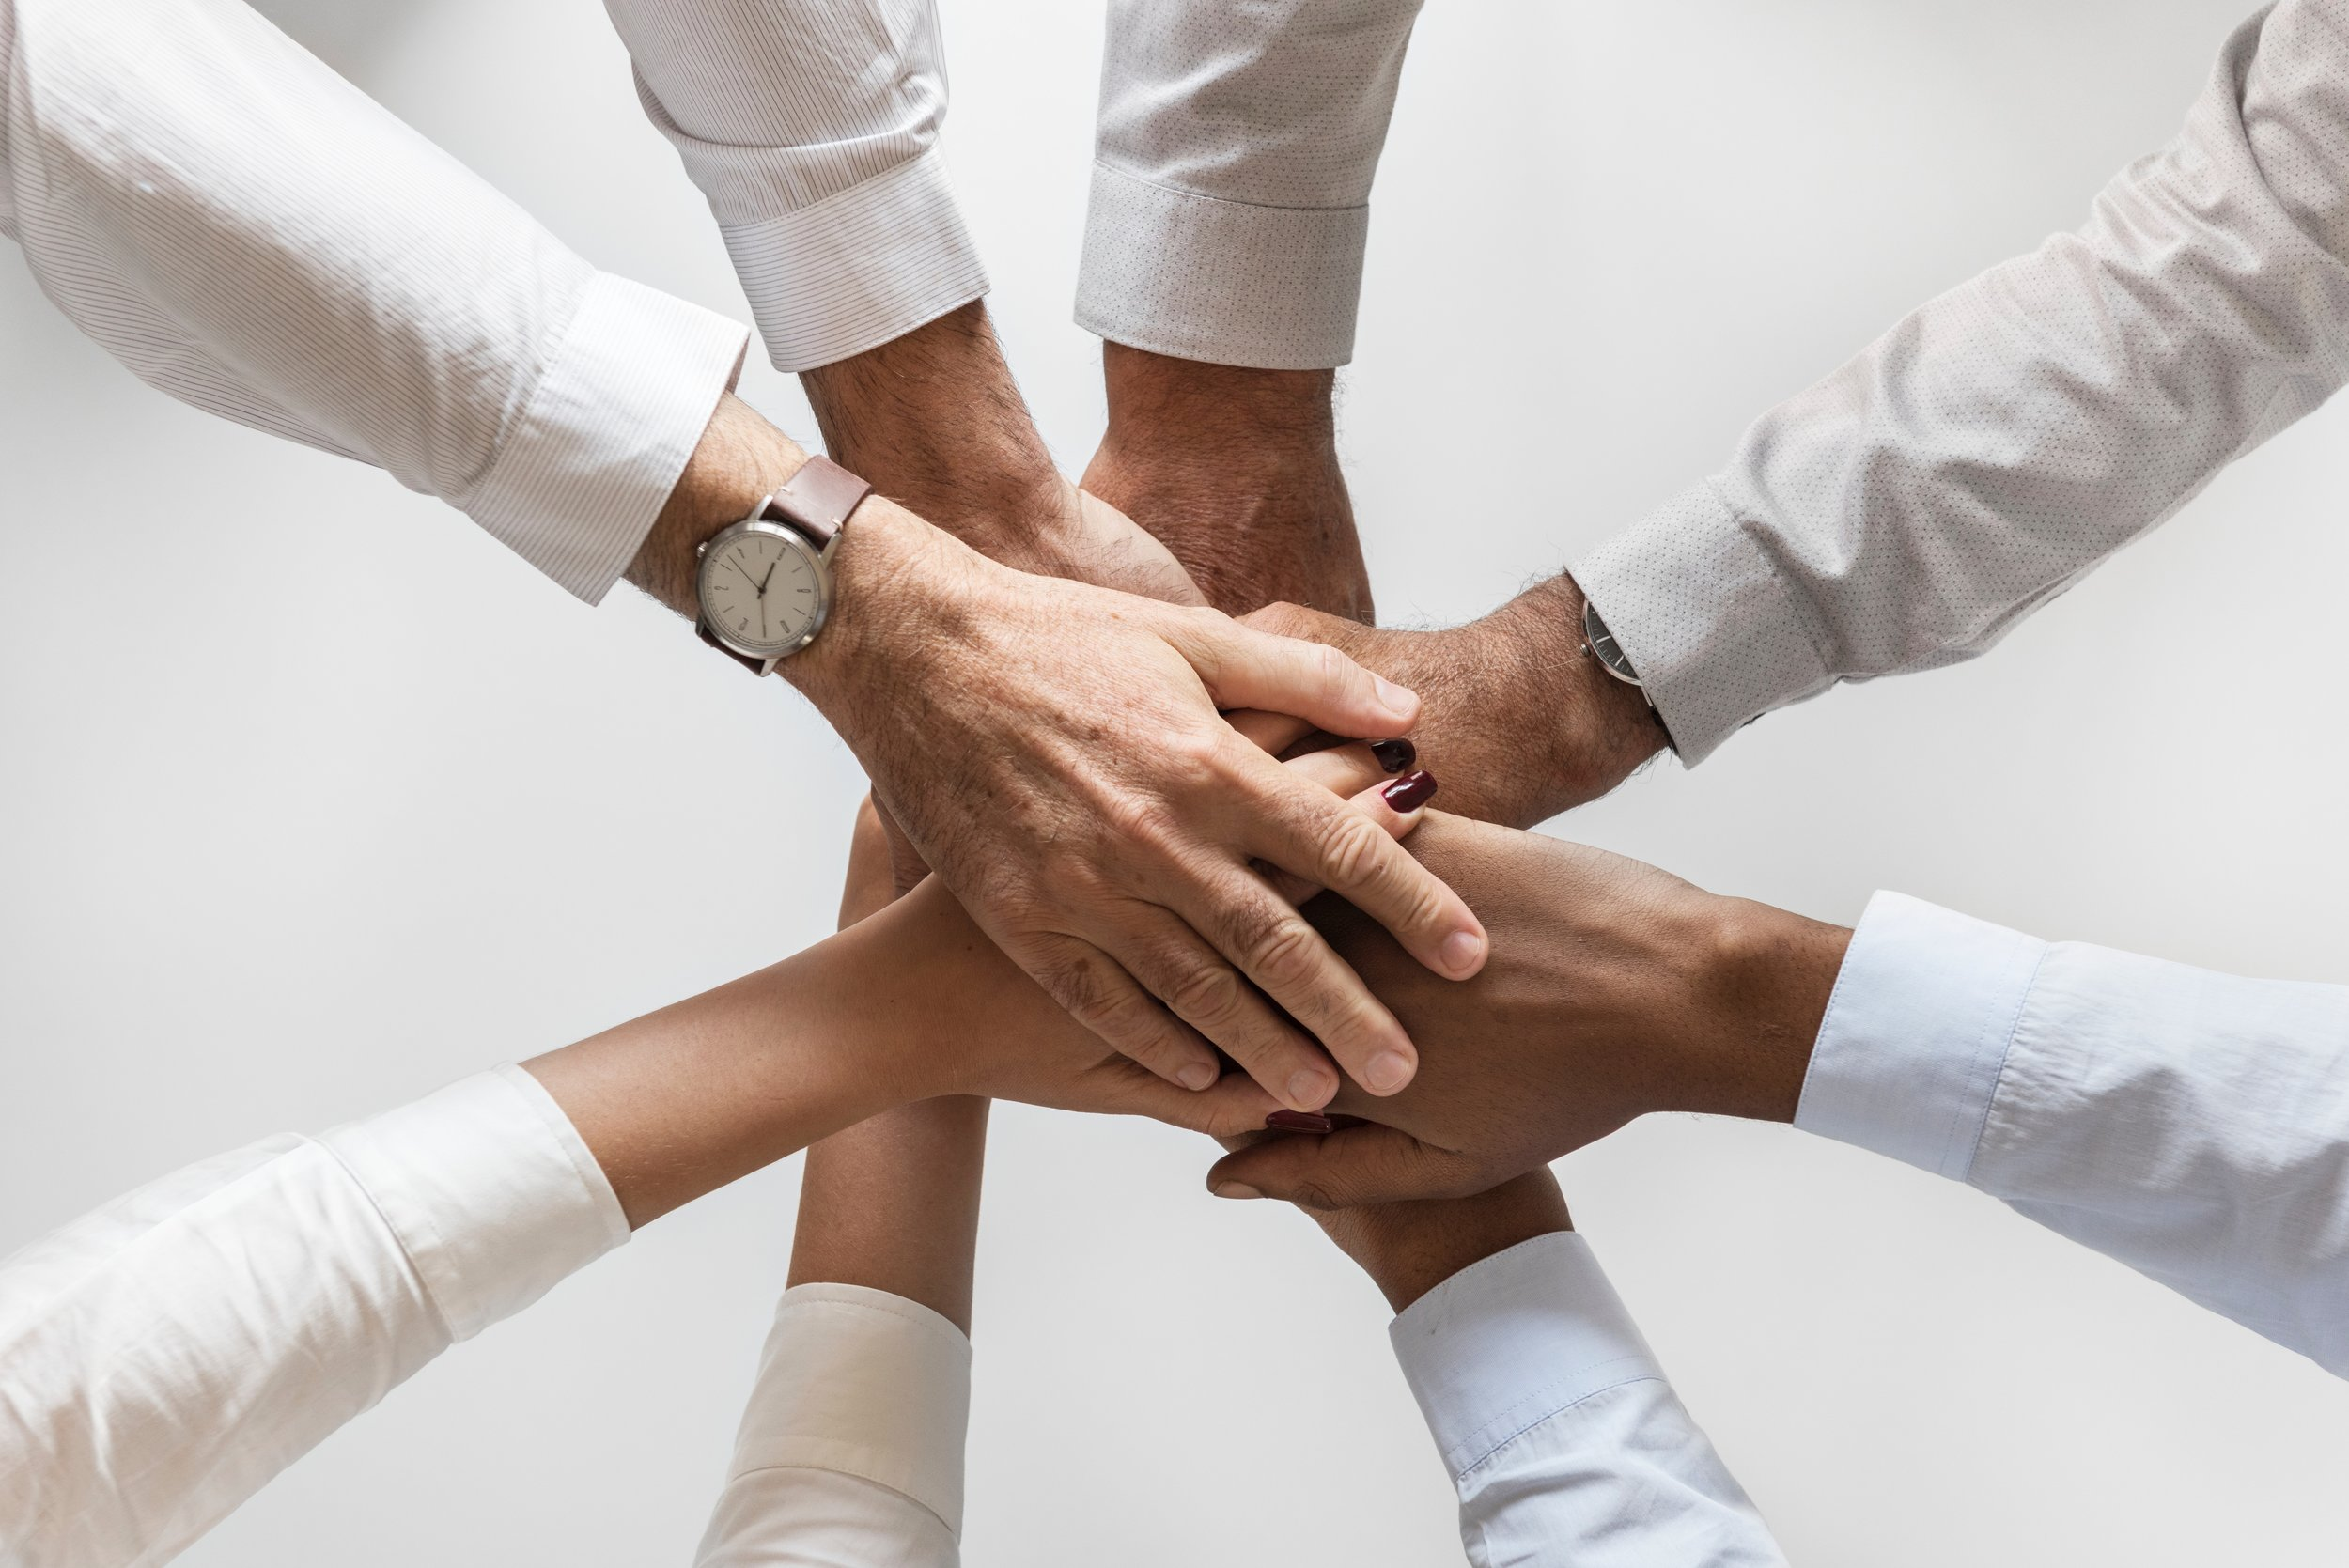 a team with experience - Our team of experts has been working in the wellness field for over two decades, helping clients with various needs. From weight loss to skin tightening to improvement in immunity, the QR team can support you!